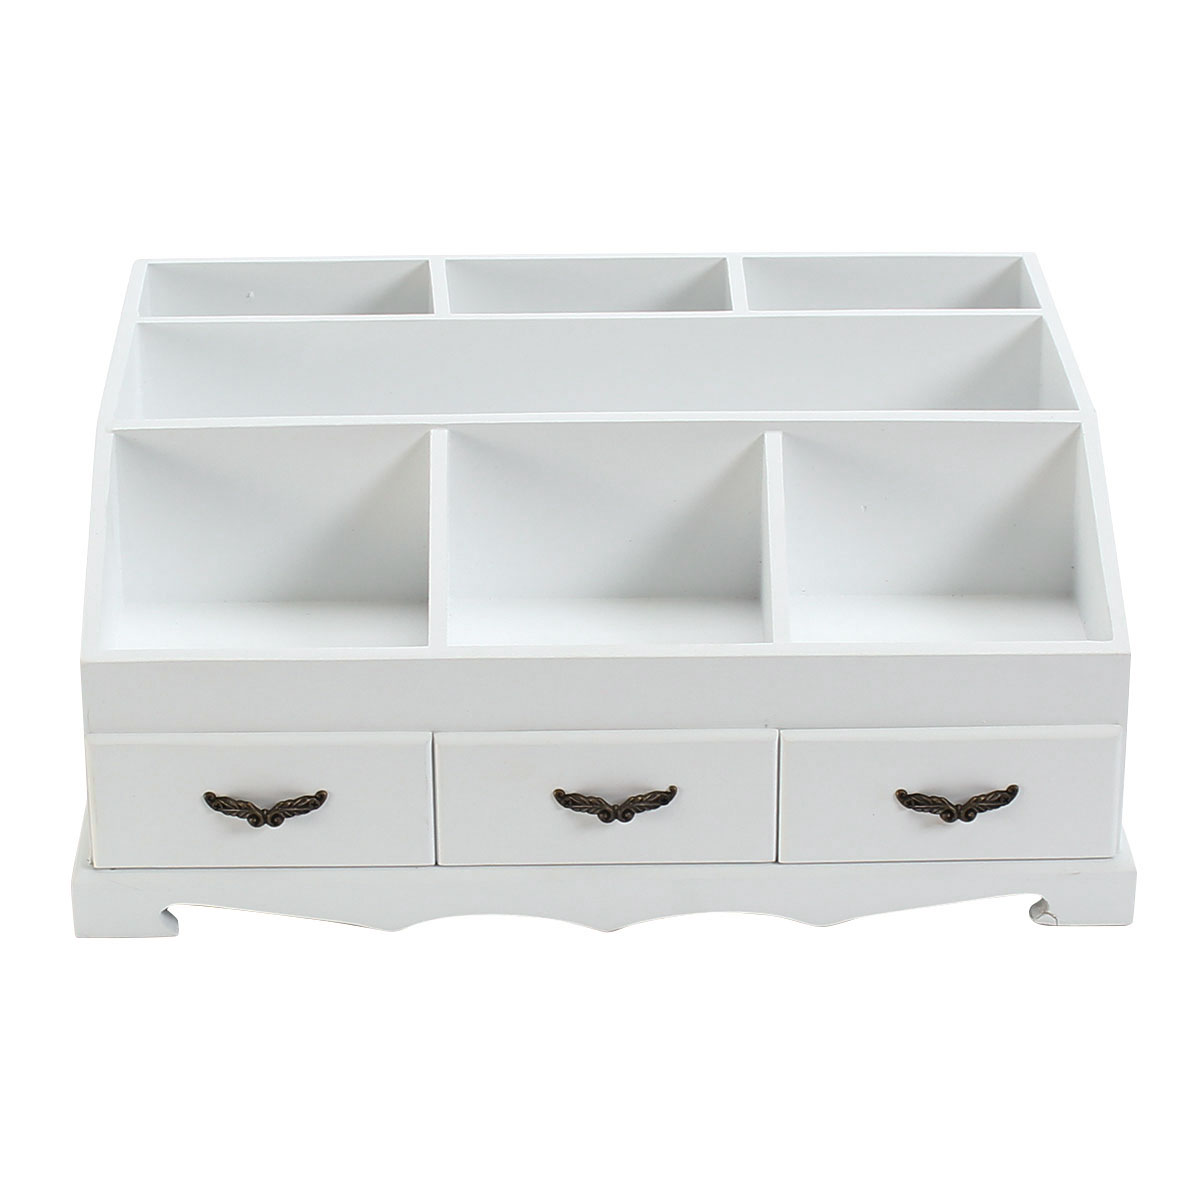 Makeup Storage Drawers Jewelry Display Box Storage Cosmetic ...